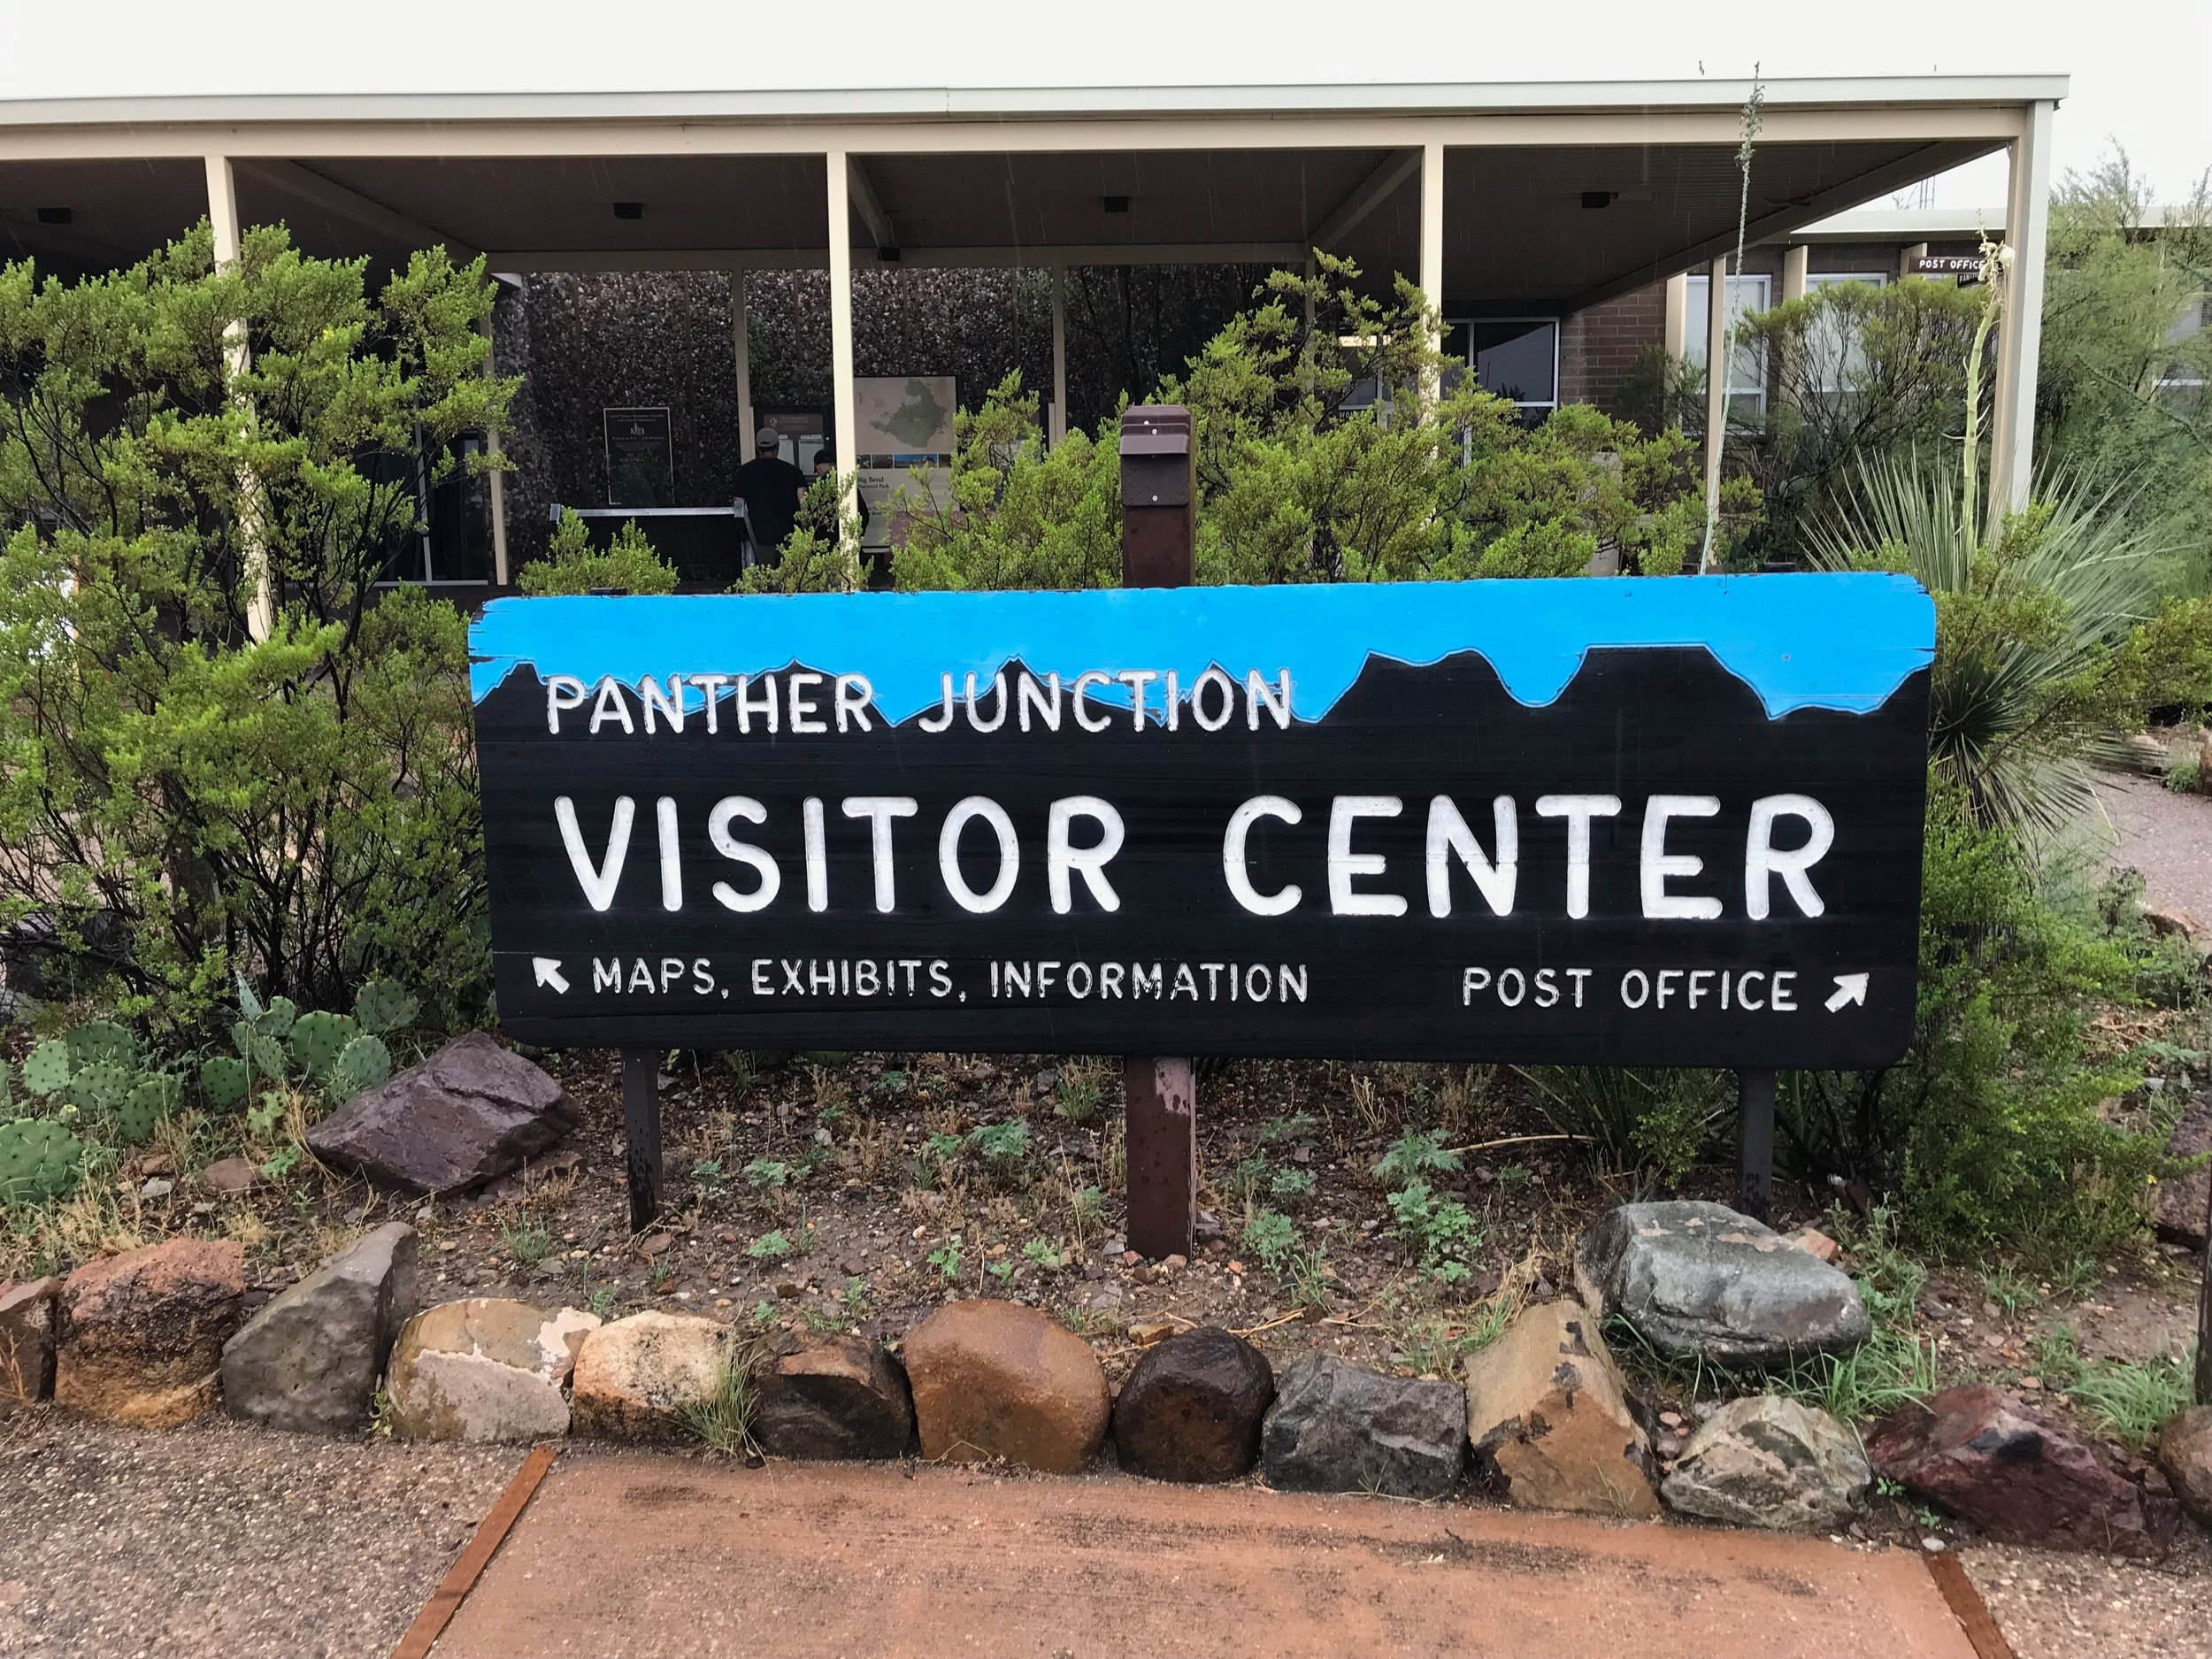 Pantther Junction Visitor Center is the only Visitor Center open all year.